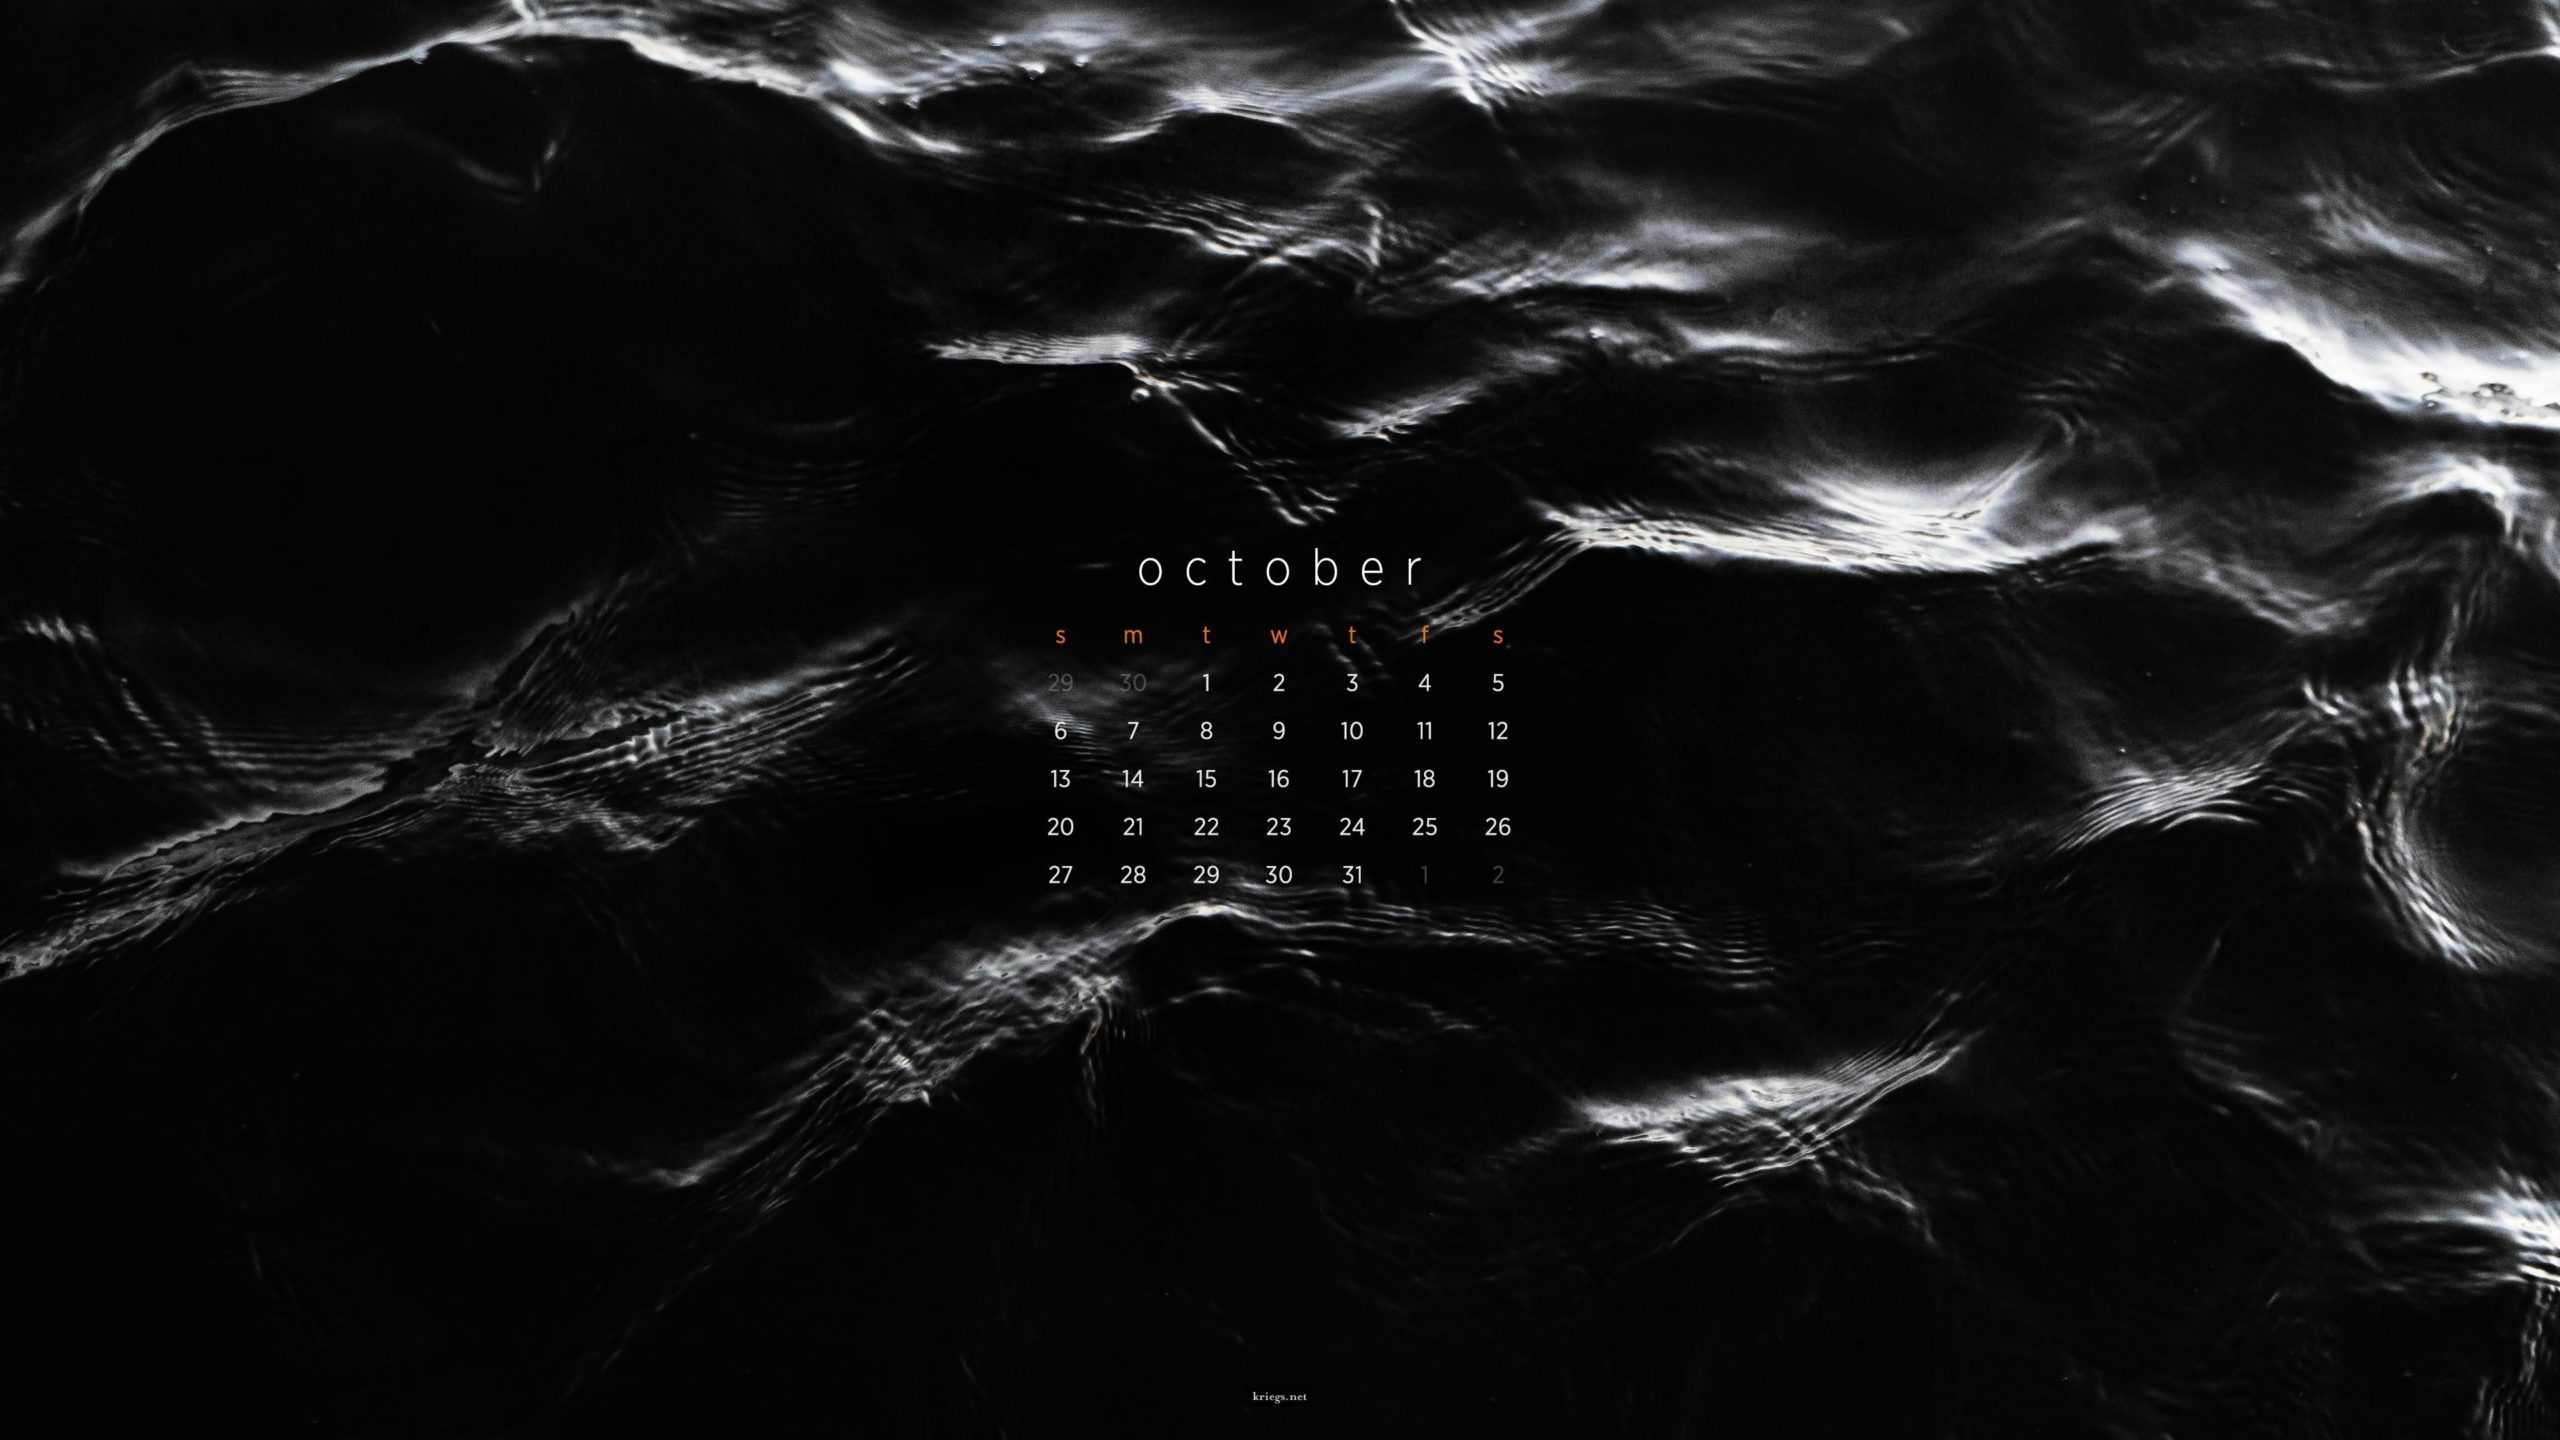 October 2019 wallpaper octoberwallpaperiphone (With